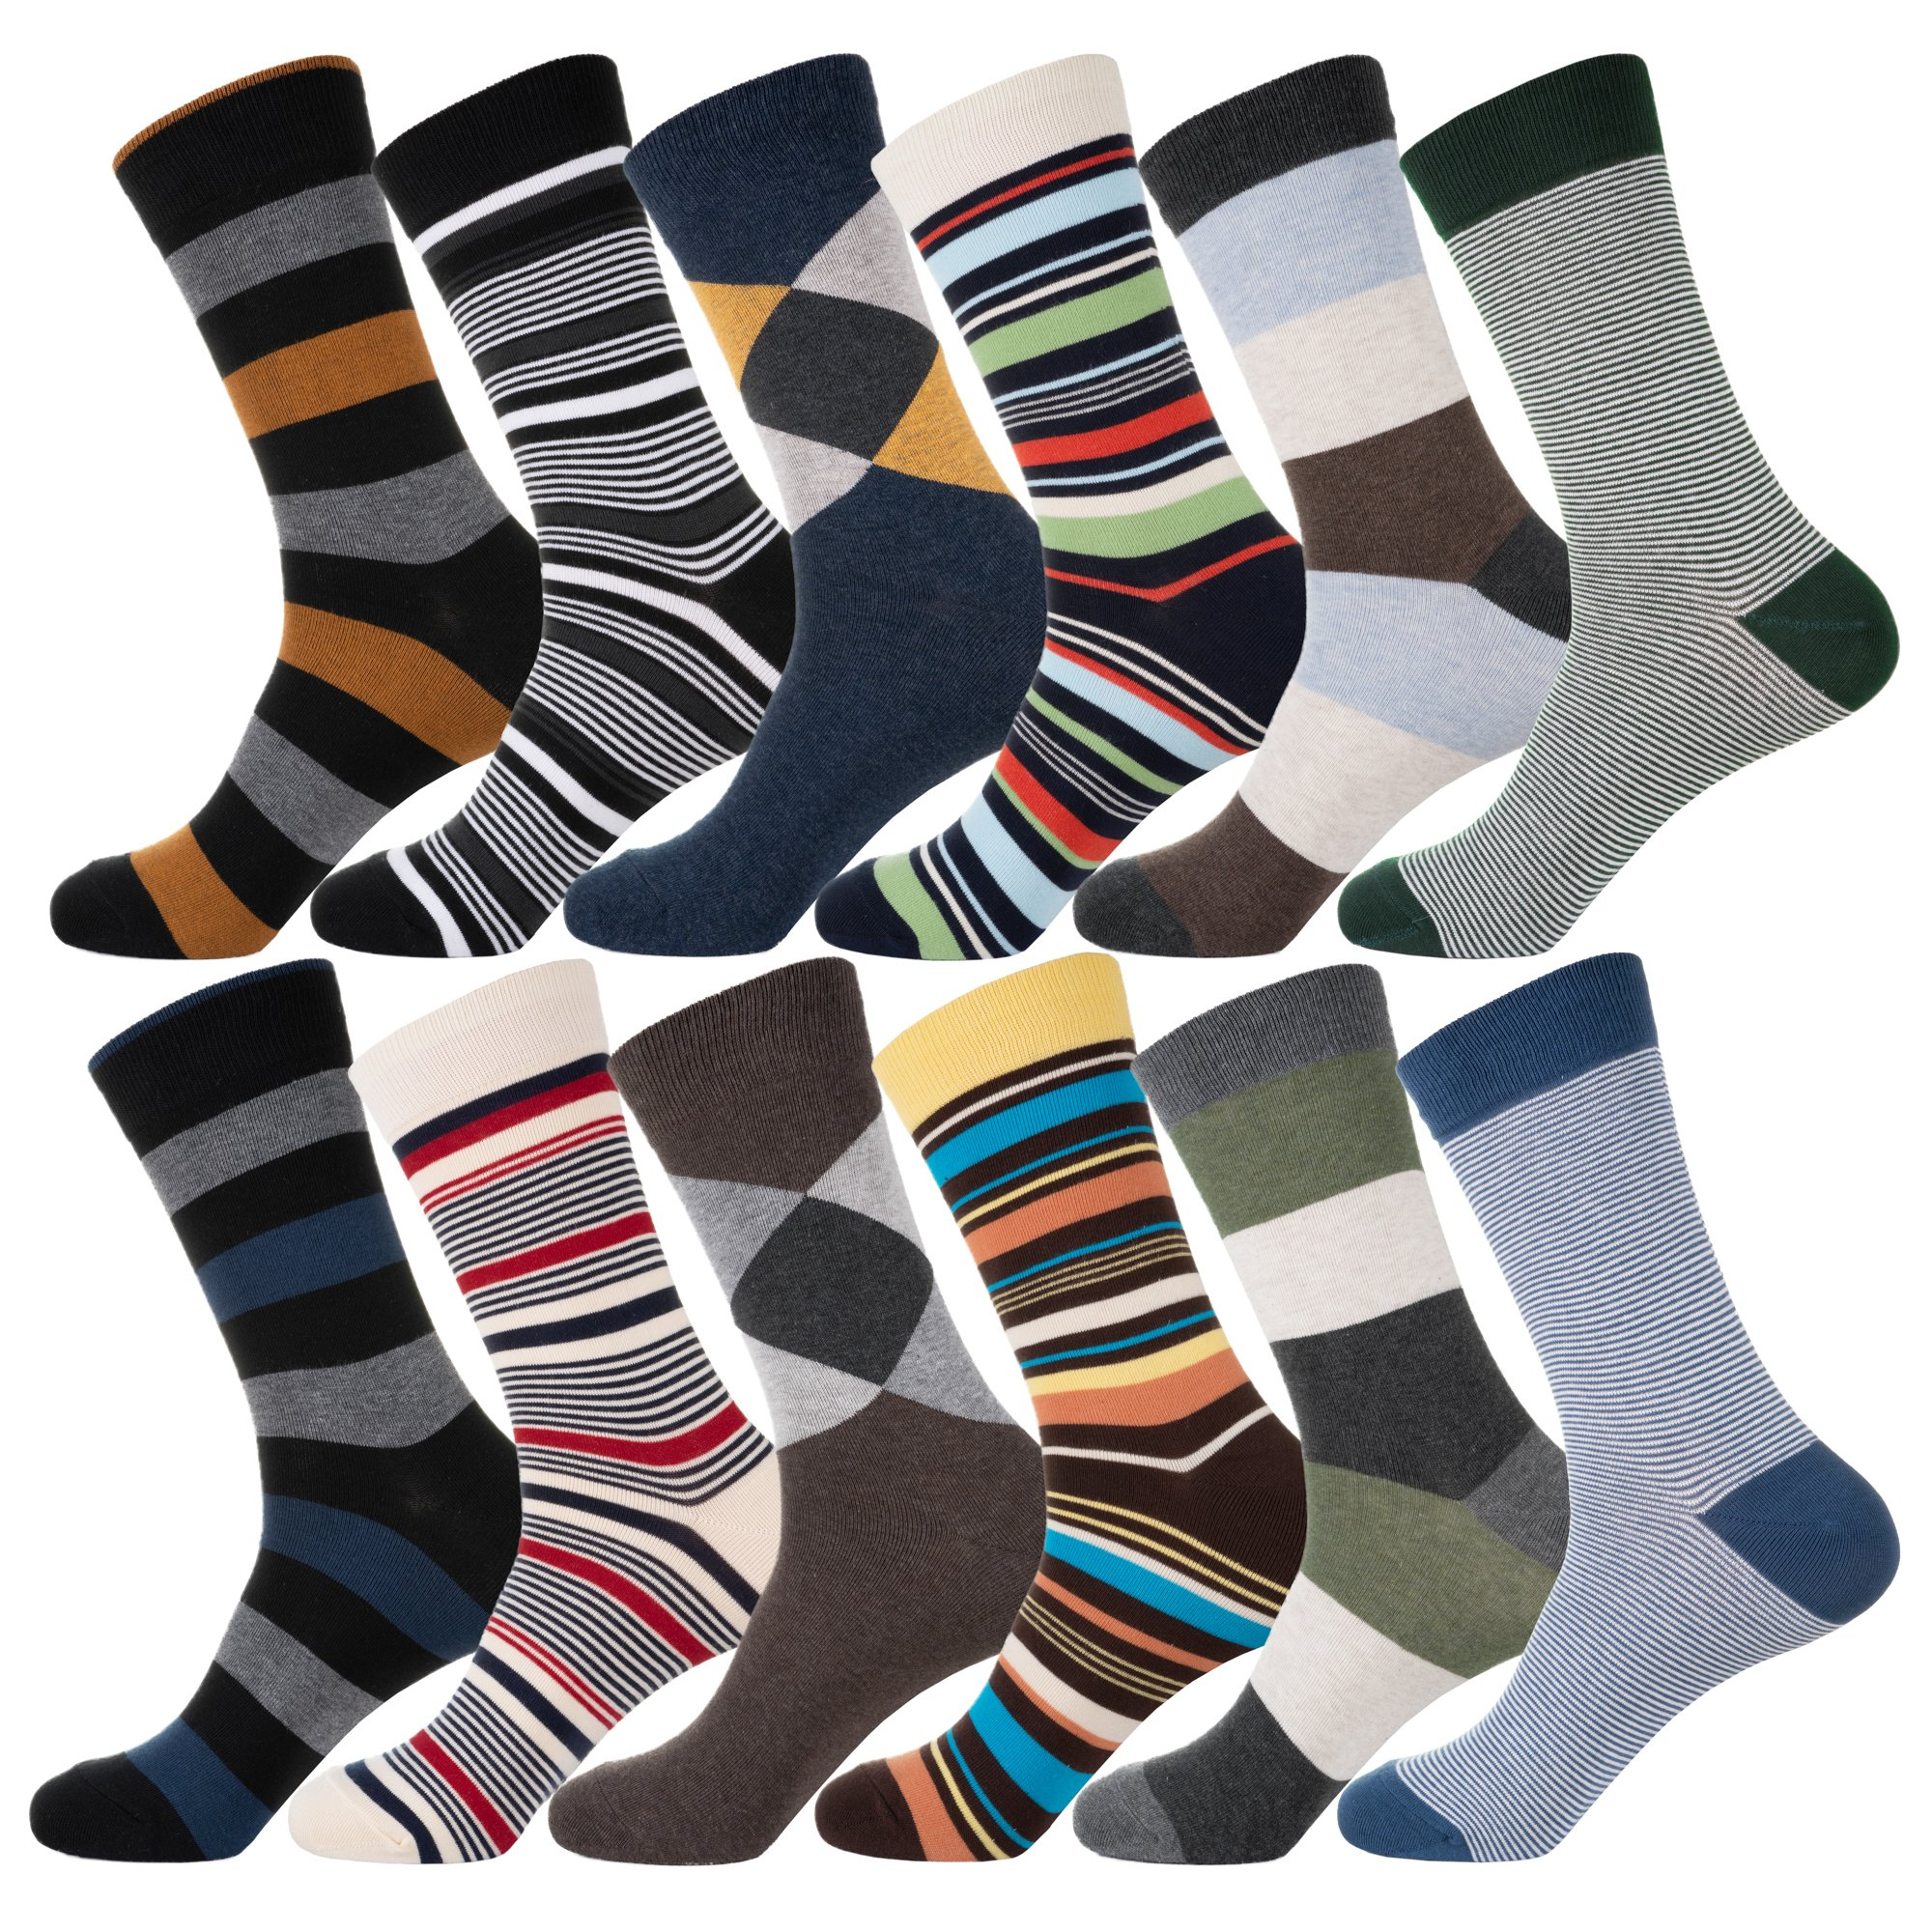 YourFeet Men's 12 Pack Thin Cotton Colorful Stripe Argyle Designed Business Dress Socks Gift Size 9-12 (Assorted-2)